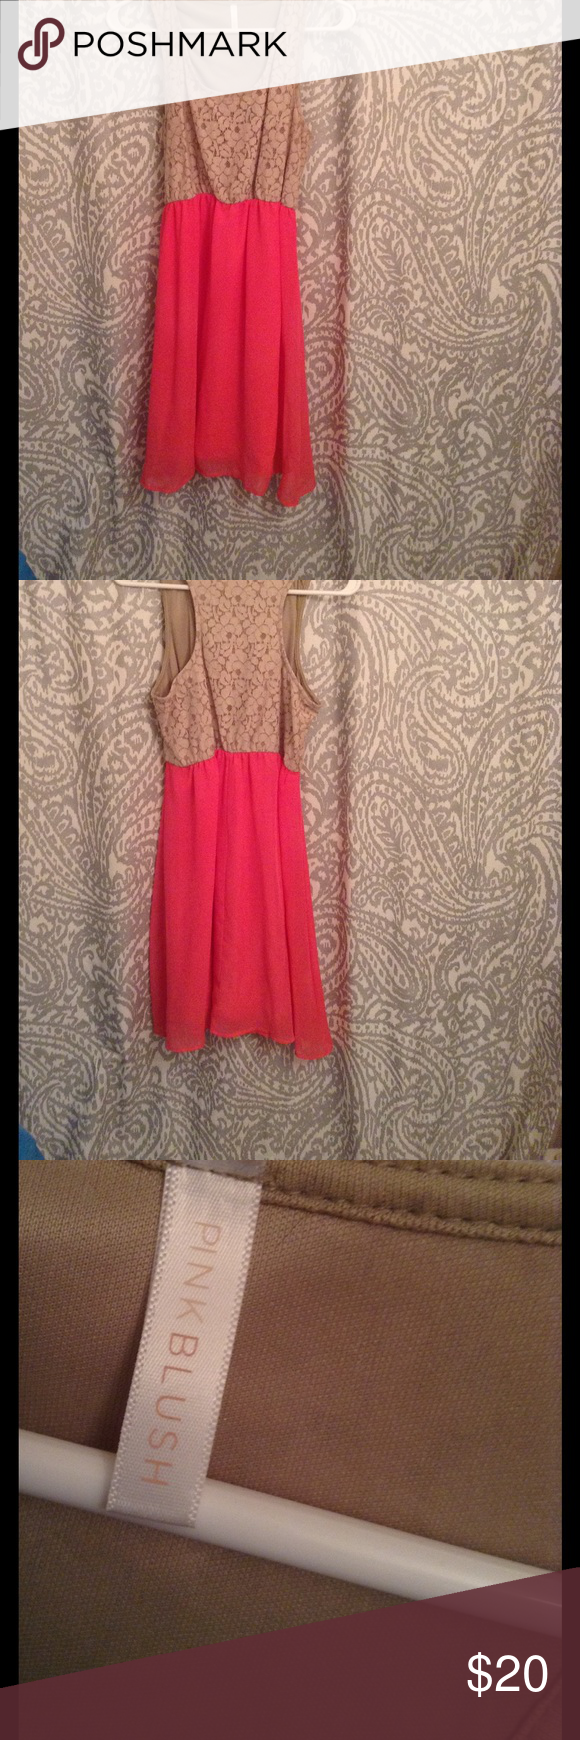 """Pinkblush maternity dress 👗 Cute Pinkblush maternity dress with tan lace racer back top and coral chiffon bottom. Only worn twice. Perfect paired with sandals for your baby shower! I'm 5'6"""" and it was knee length. Pinkblush Dresses"""